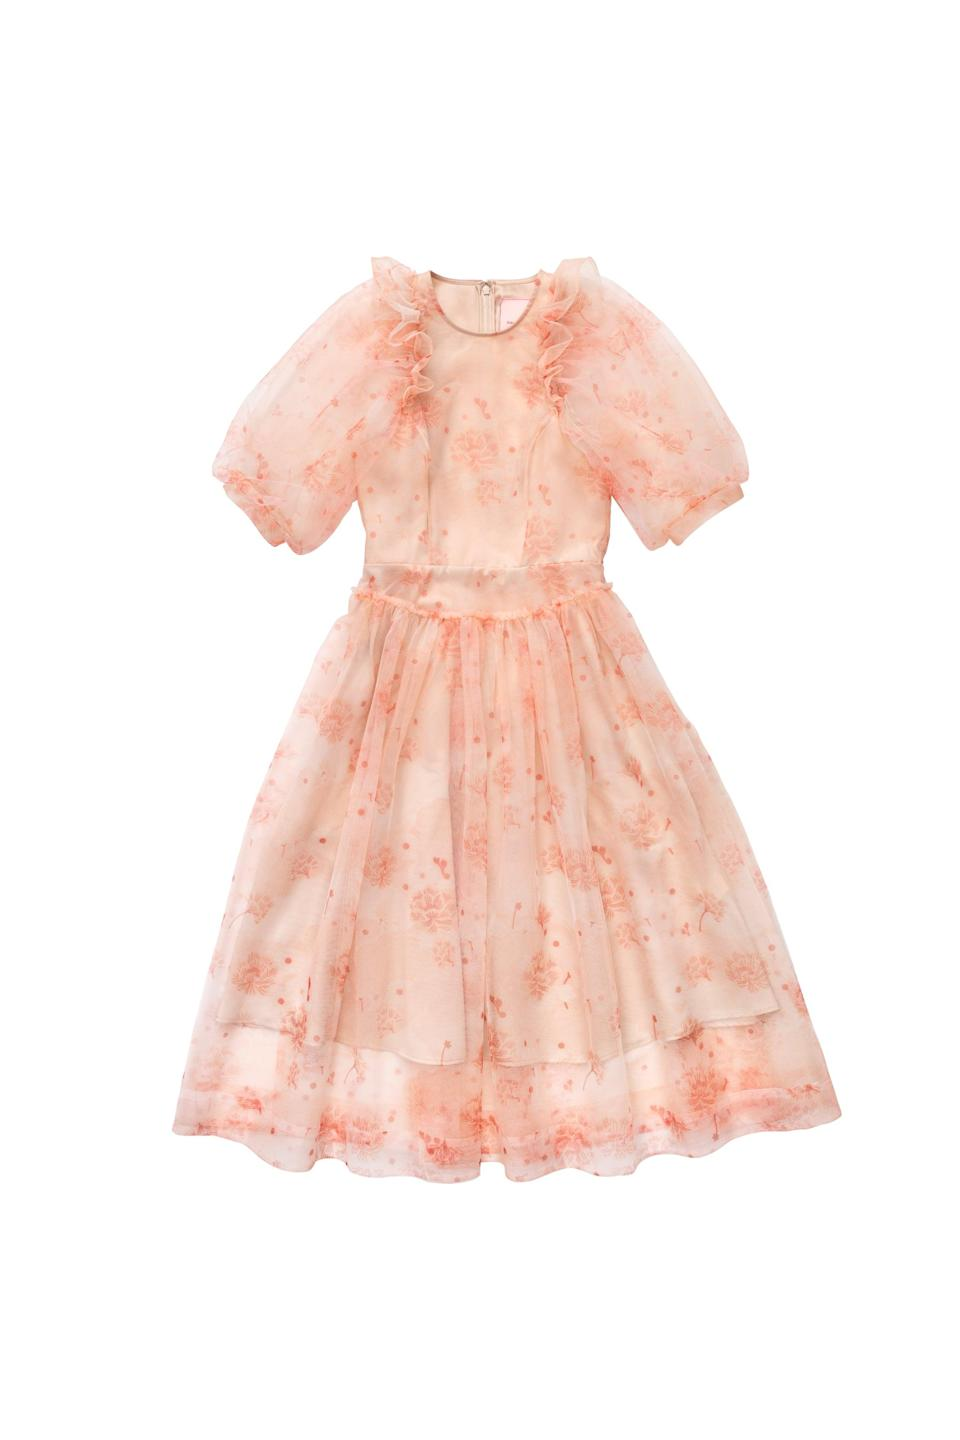 <p><span>Simone Rocha x H&amp;M Puff-Sleeved Tulle Dress</span> ($199).</p>